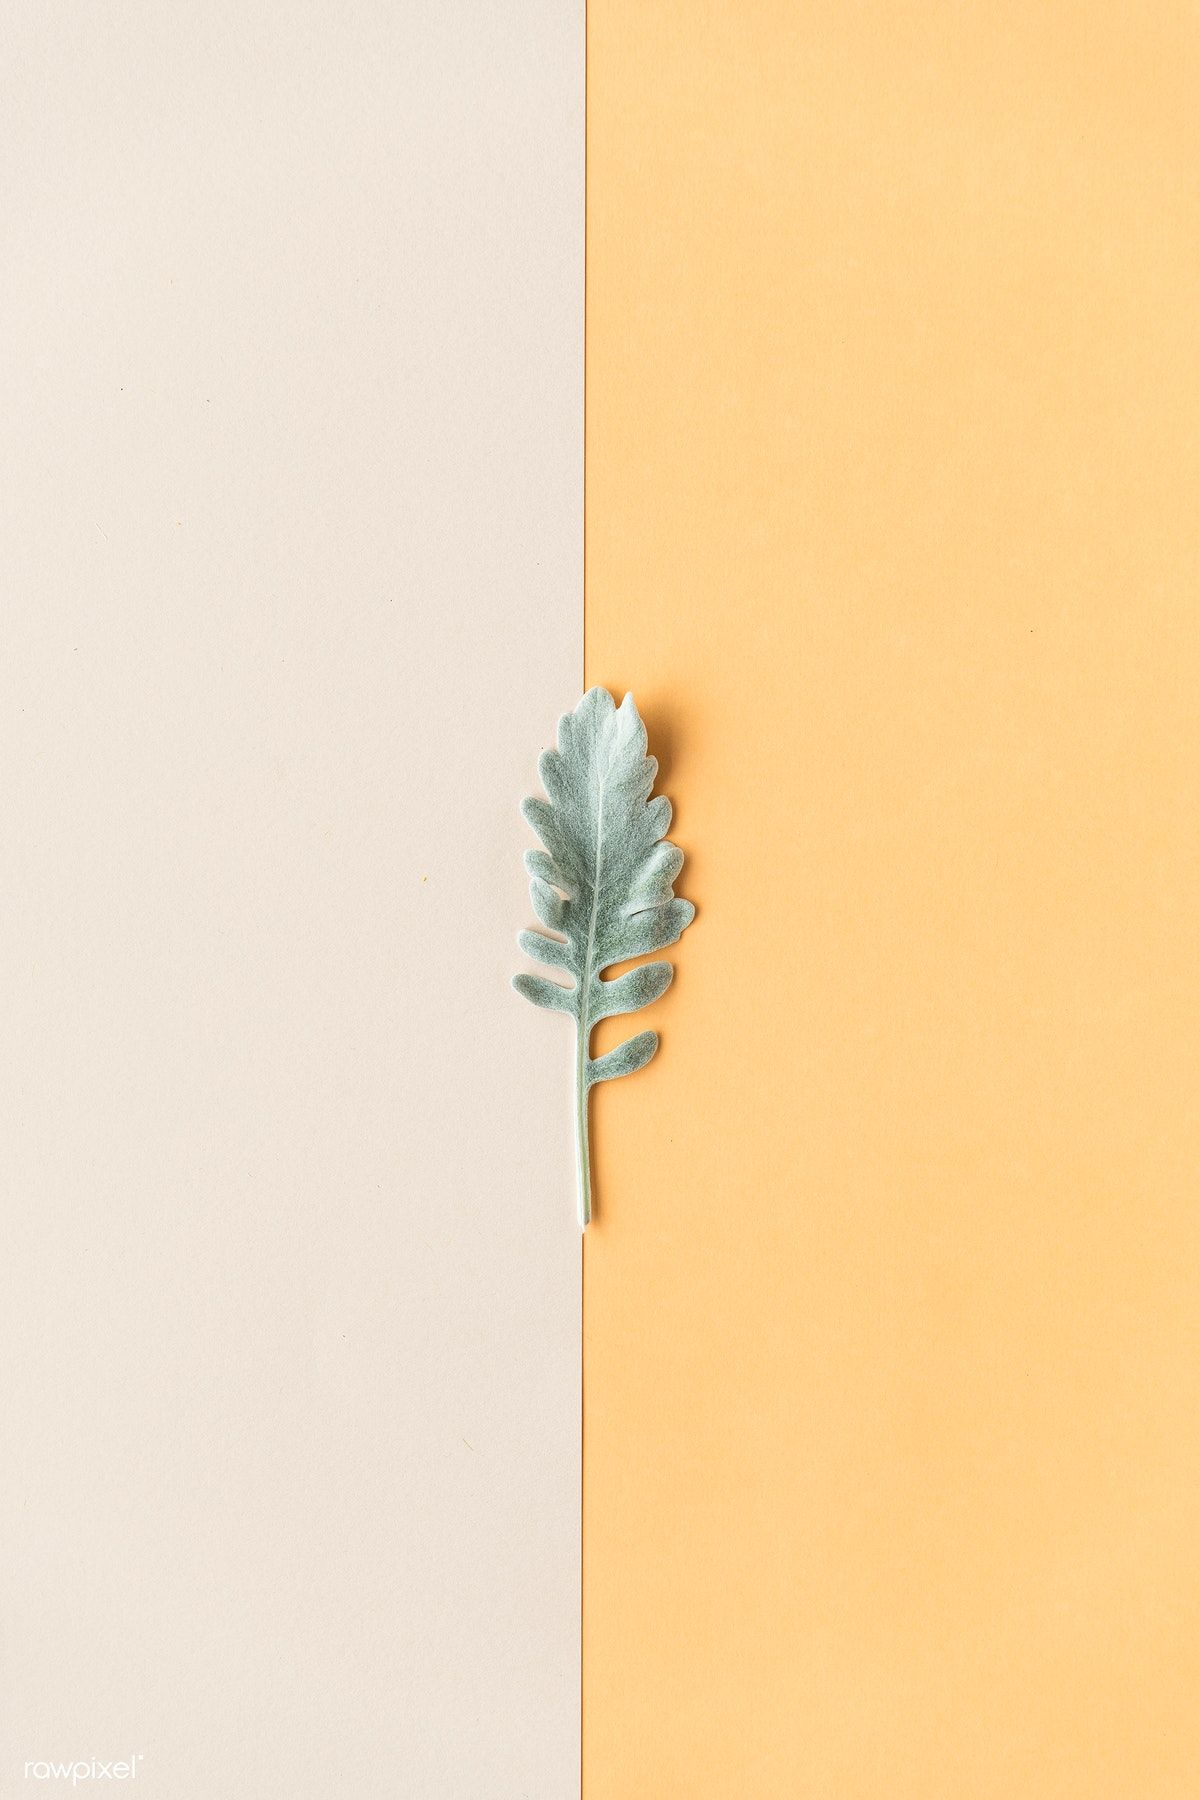 Download premium image of Blank two tone card template mockup by Ake about envelope card, aerial, beautiful, bloom, and blossom 1204398